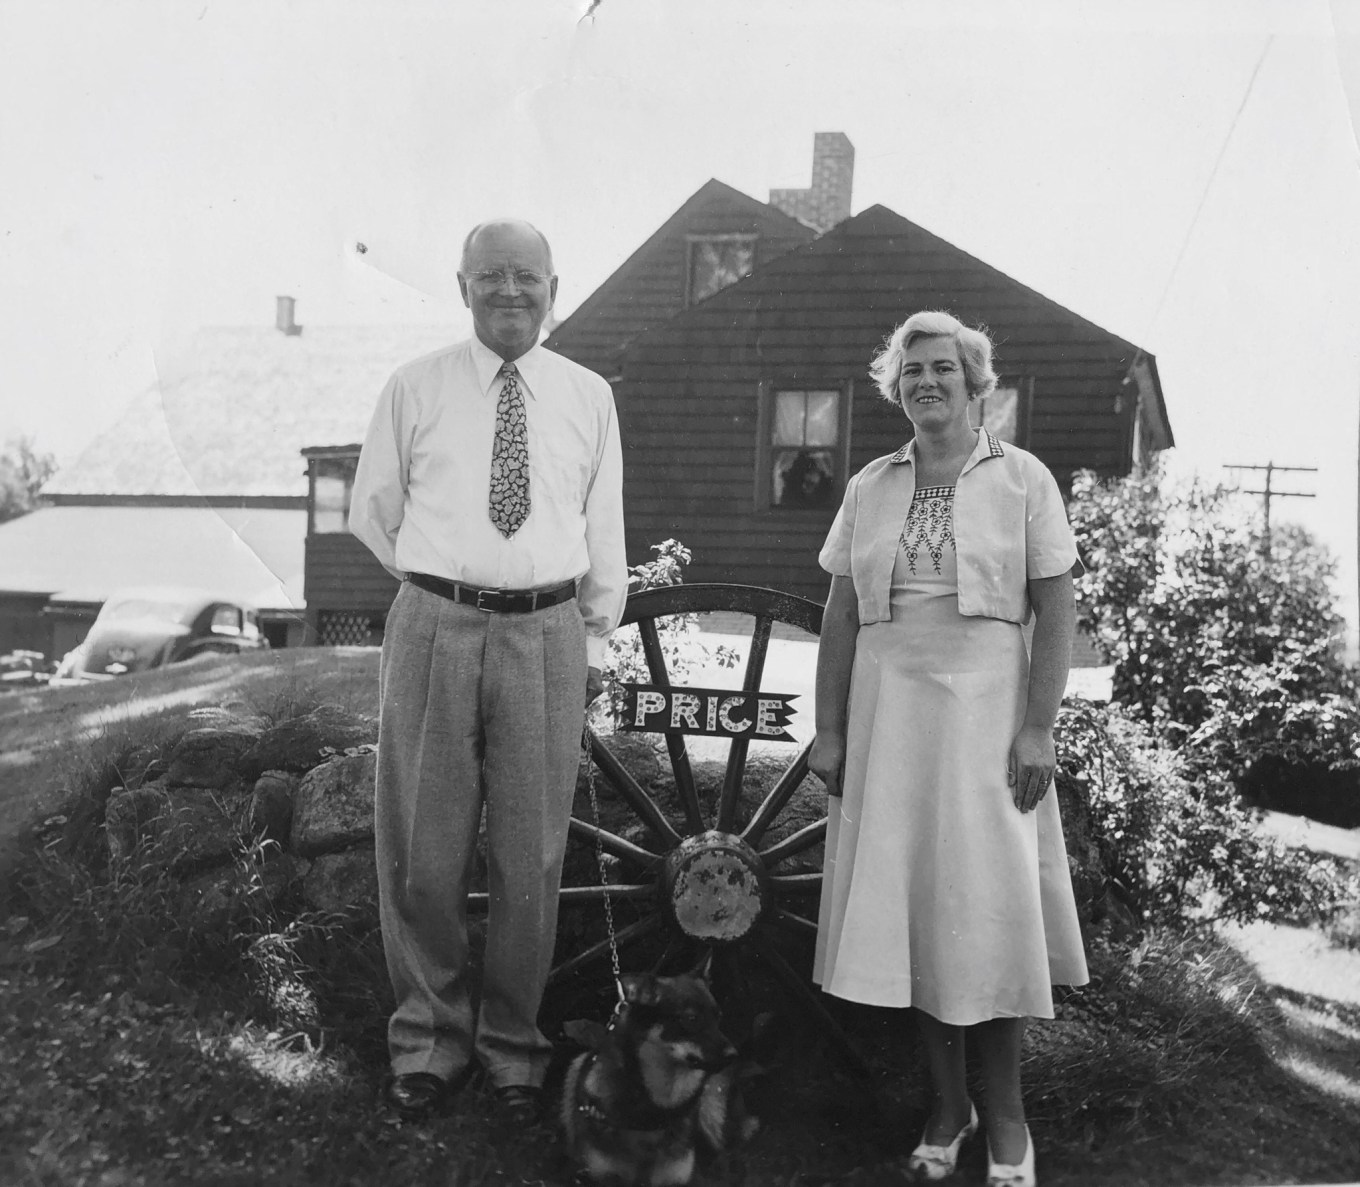 Hubert and Mary Price, Burlington MA